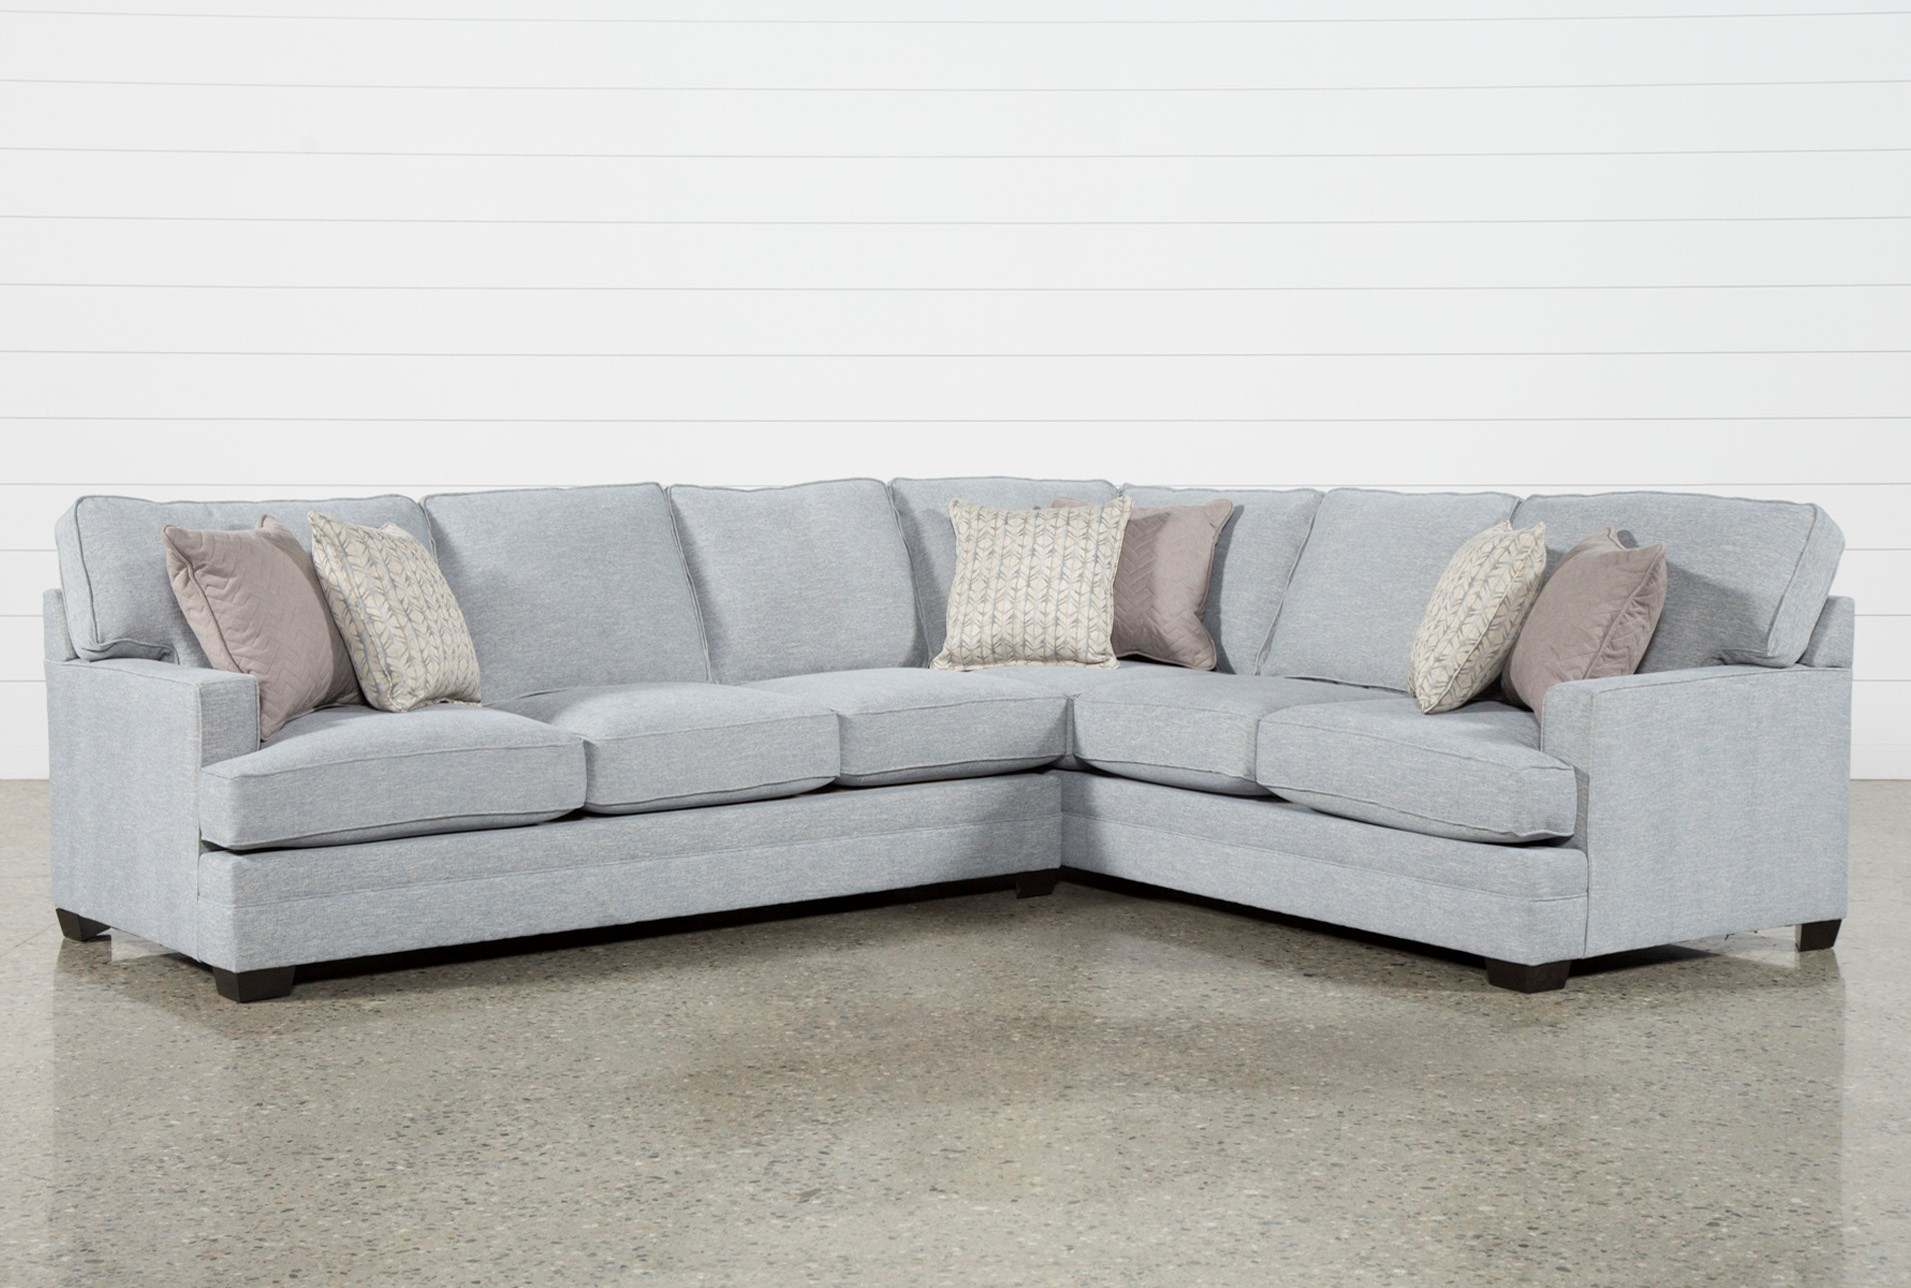 Josephine 2 Piece Sectional W Laf Sofa Qty 1 Has Been Successfully Added To Your Cart